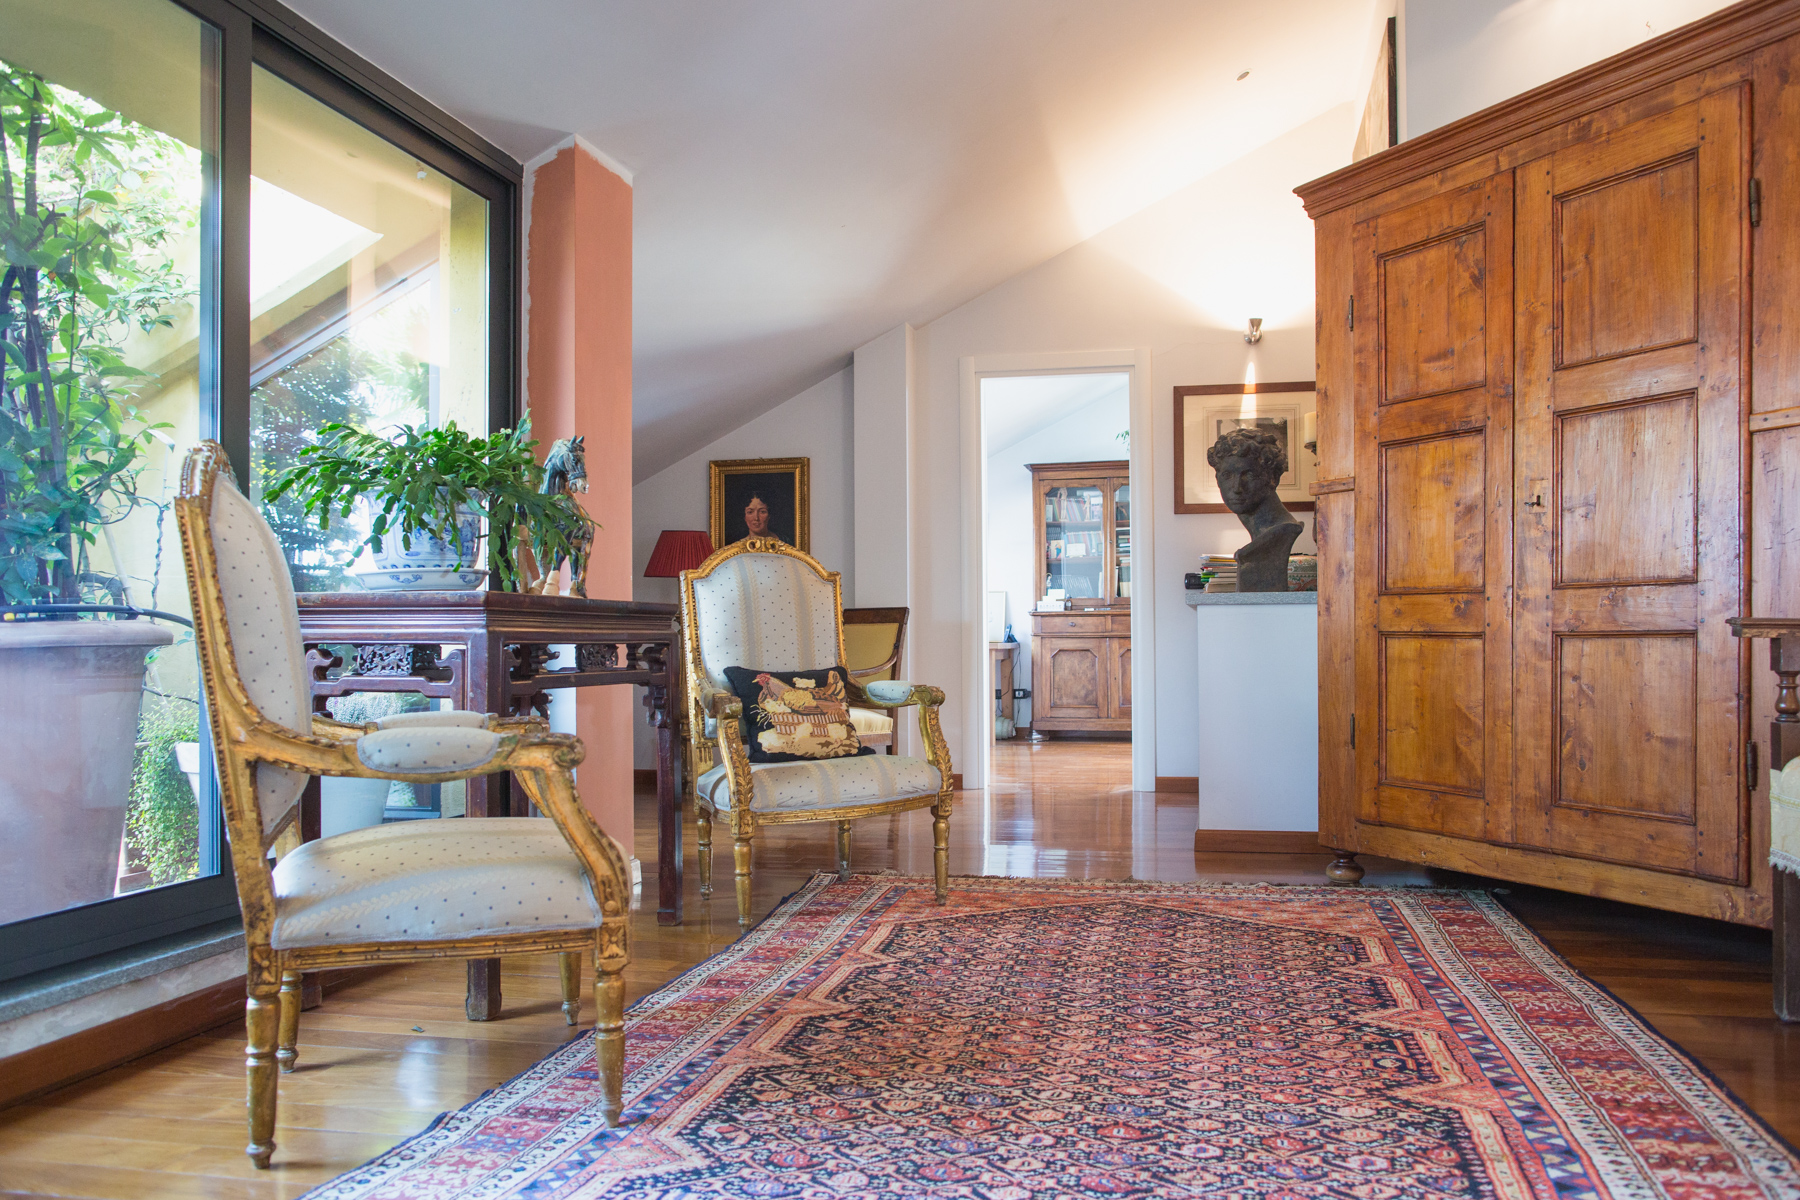 Single Family Home for Sale at Panoramic attic overlooking the hill of Turin Piazza Nizza Torino, Turin 10126 Italy